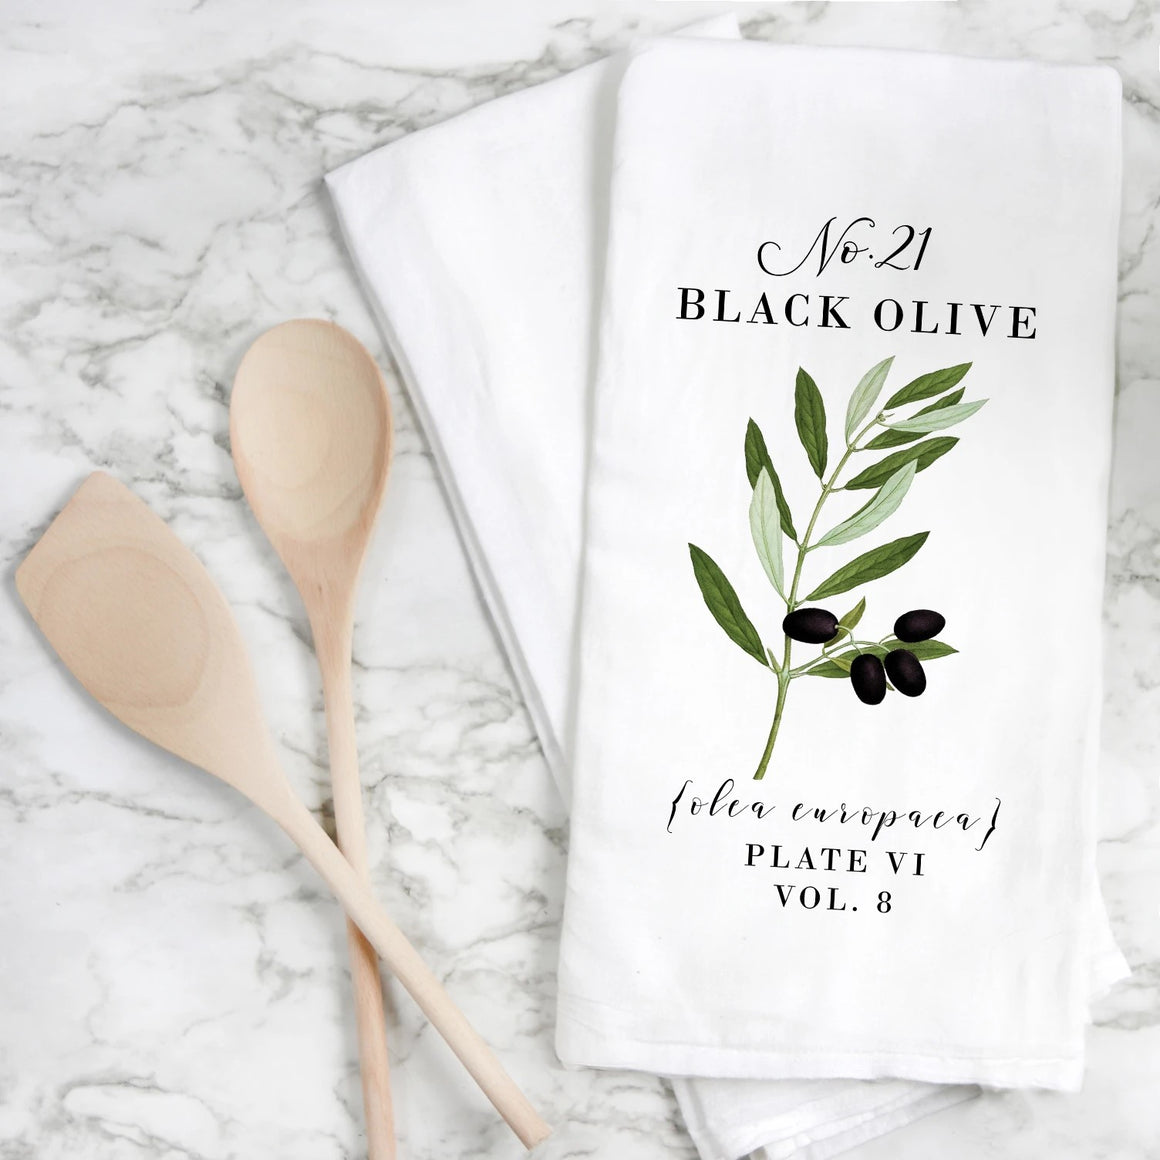 Inspired by vintage botanical illustrations, this Olive Branch Dish Towel brings graceful, fresh and elegant style to your farmhouse kitchen or bath. Custom designed and handcrafted in the USA from the highest quality materials.